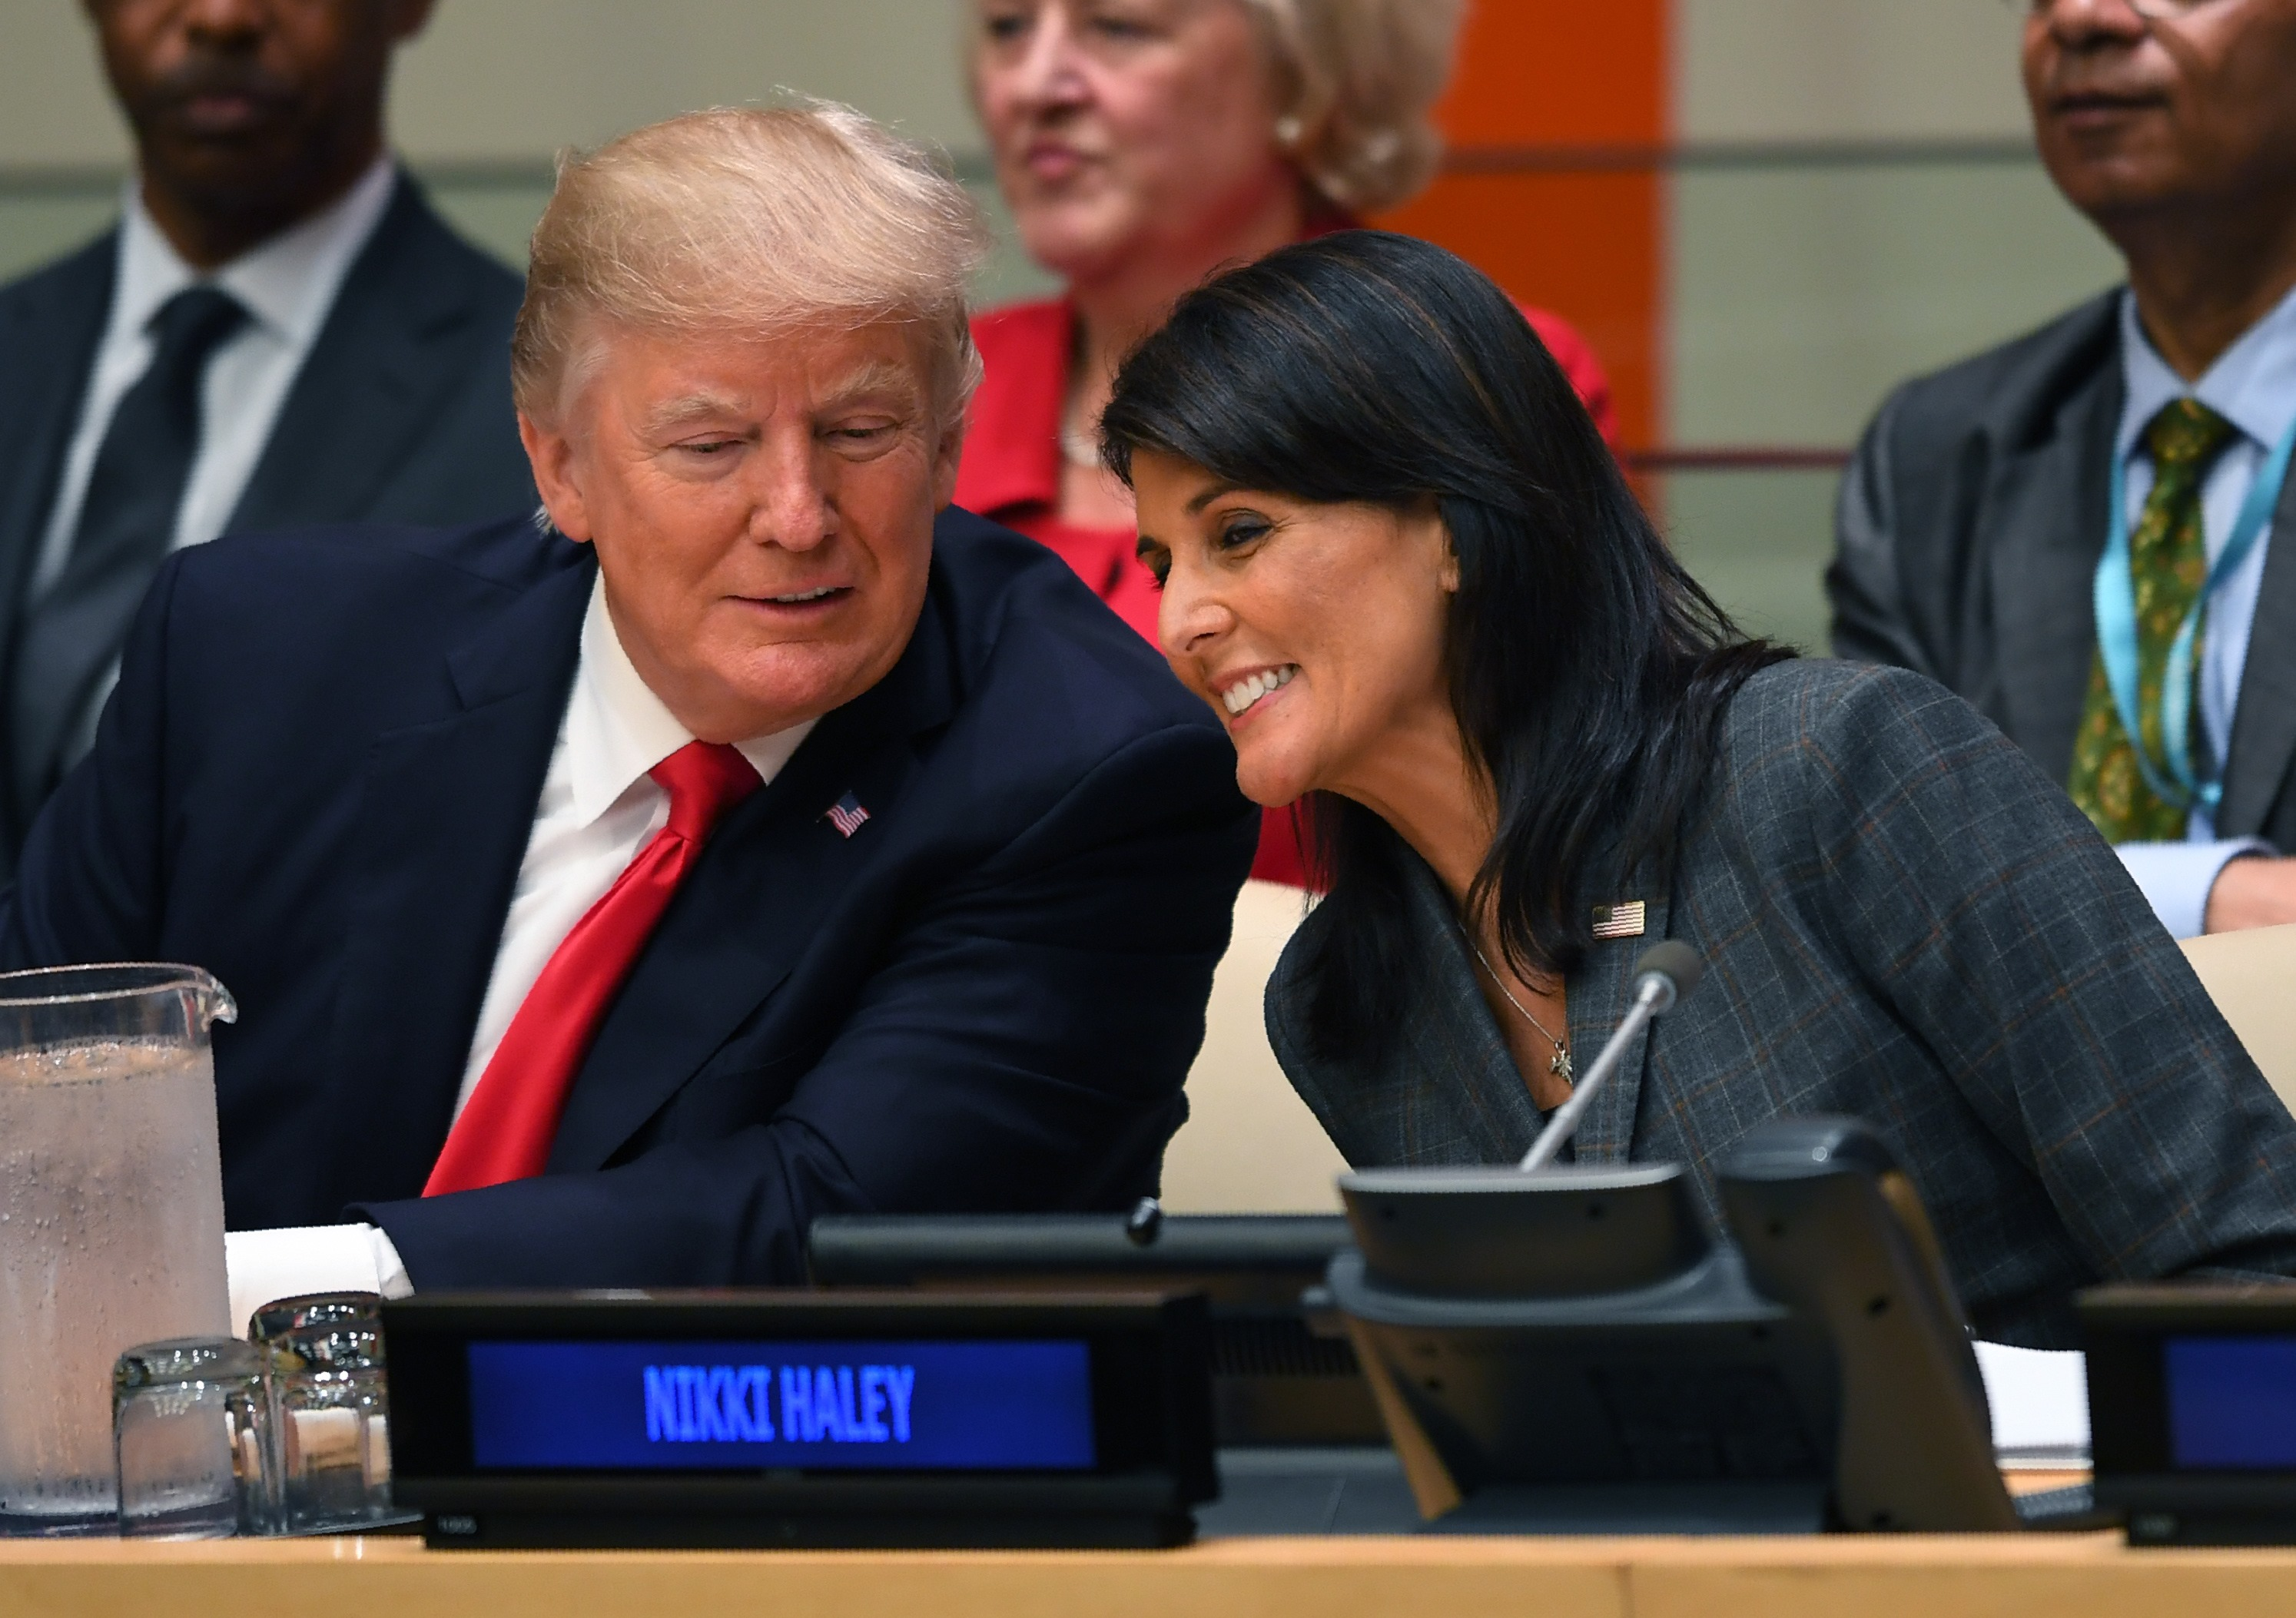 President Donald Trump and US ambassador to the United Nations Nikki Haley during a meeting on United Nations Reform at the United Nations headquarters in New York on Sept.r 18, 2017. (TIMOTHY A. CLARY/AFP/Getty Images)